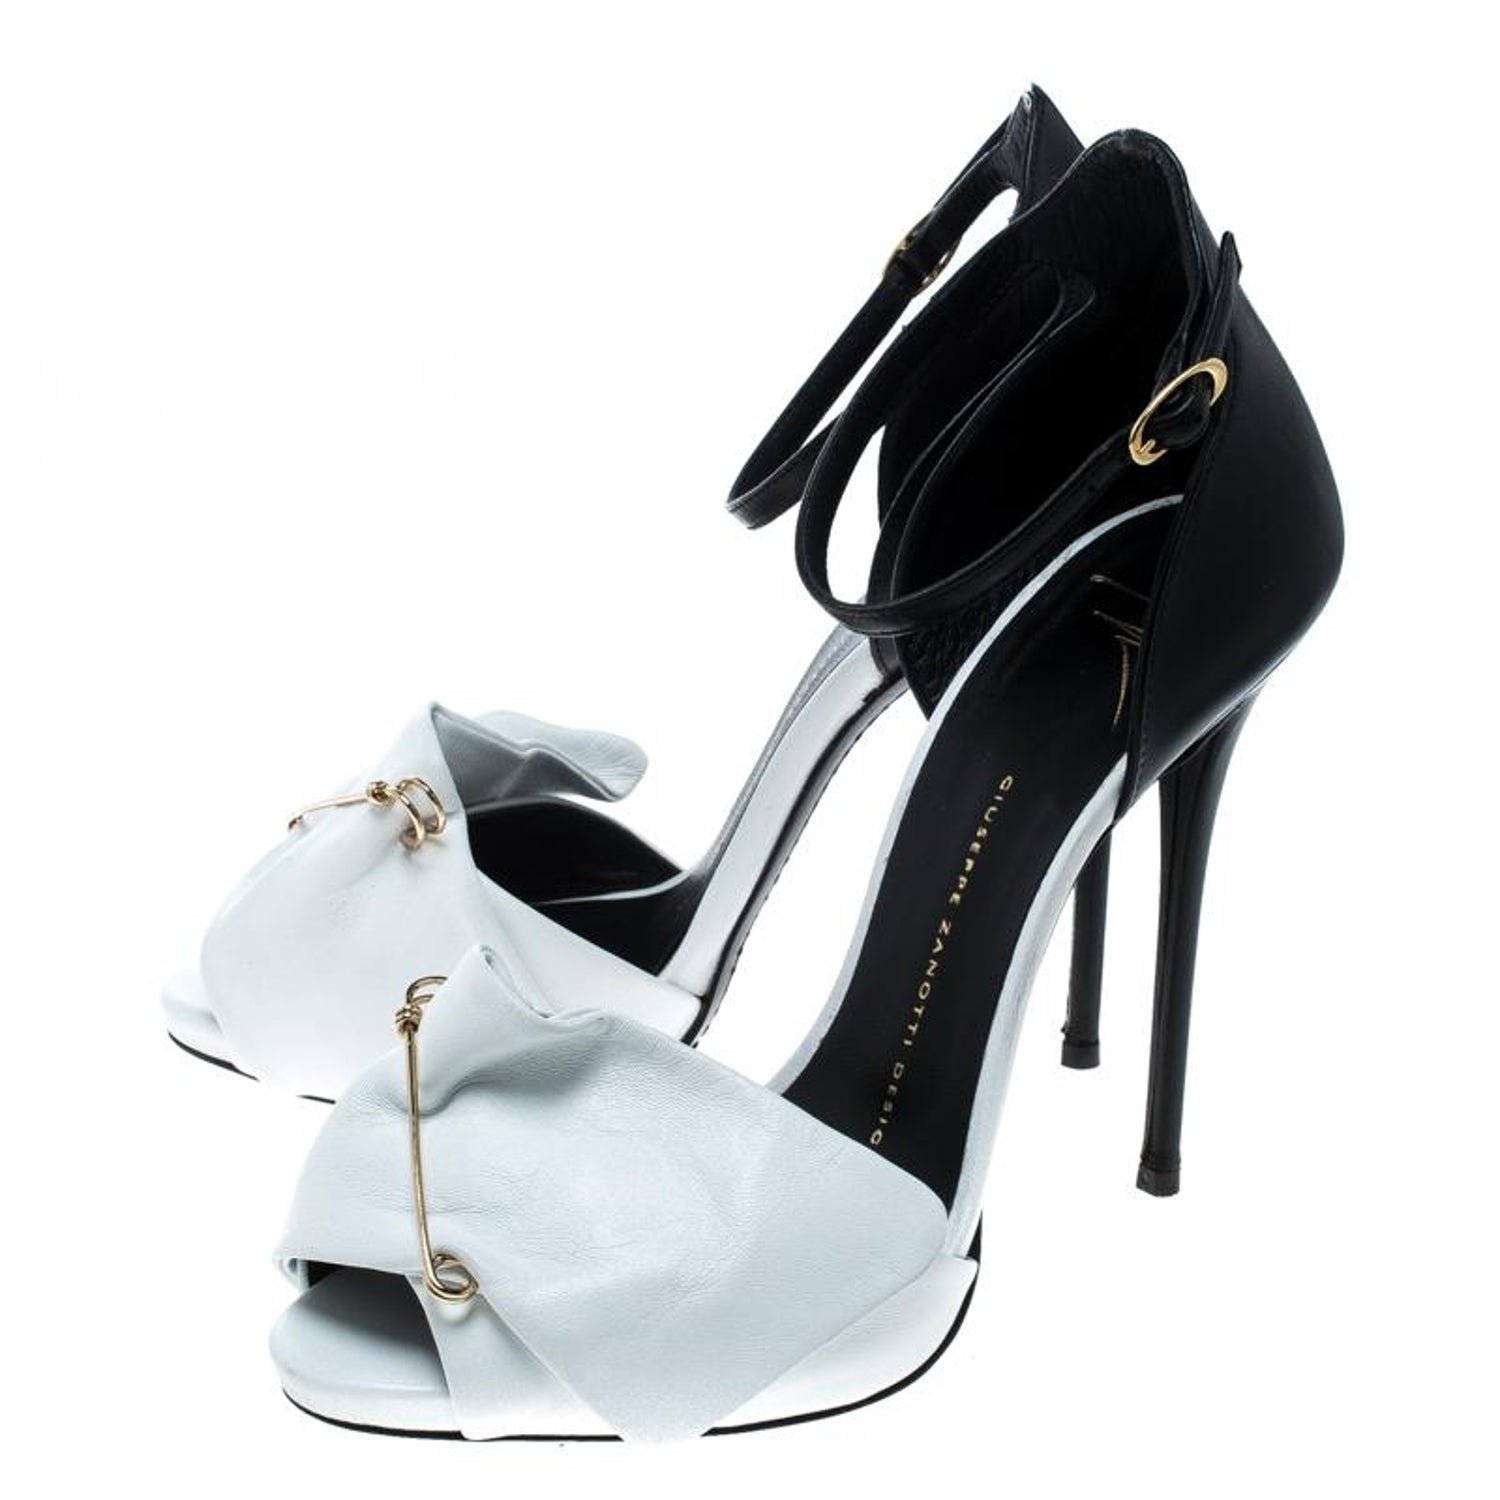 1d5bef70d Giuseppe Zanotti Monochrome Leather Safety Pin Ankle Strap Sandals Size  38.5 For Sale at 1stdibs